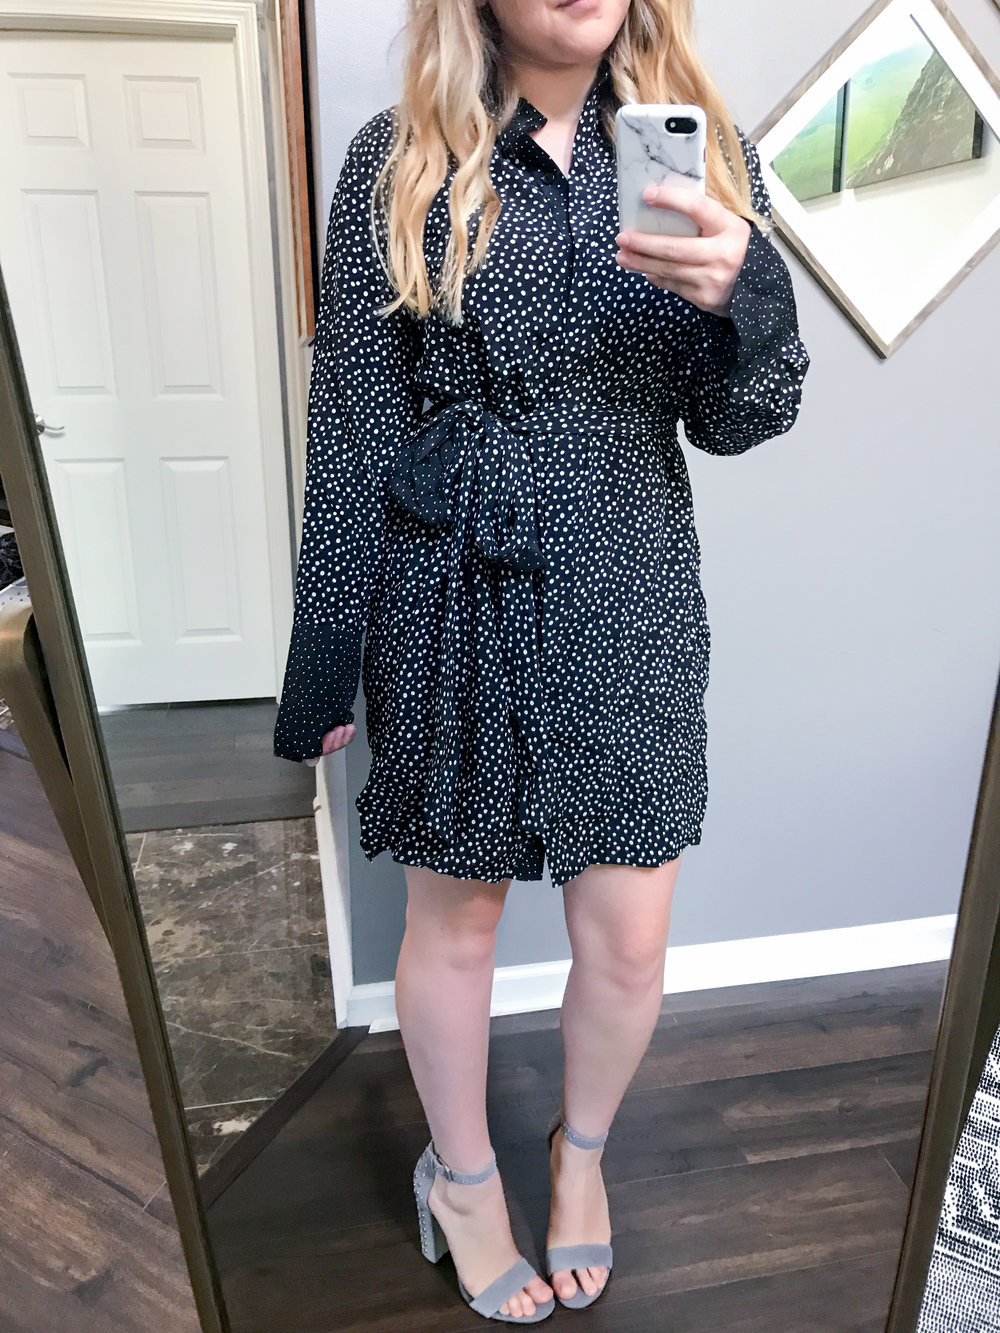 Maggie a la Mode - Diane Von Furstenberg Silk Shirtdress